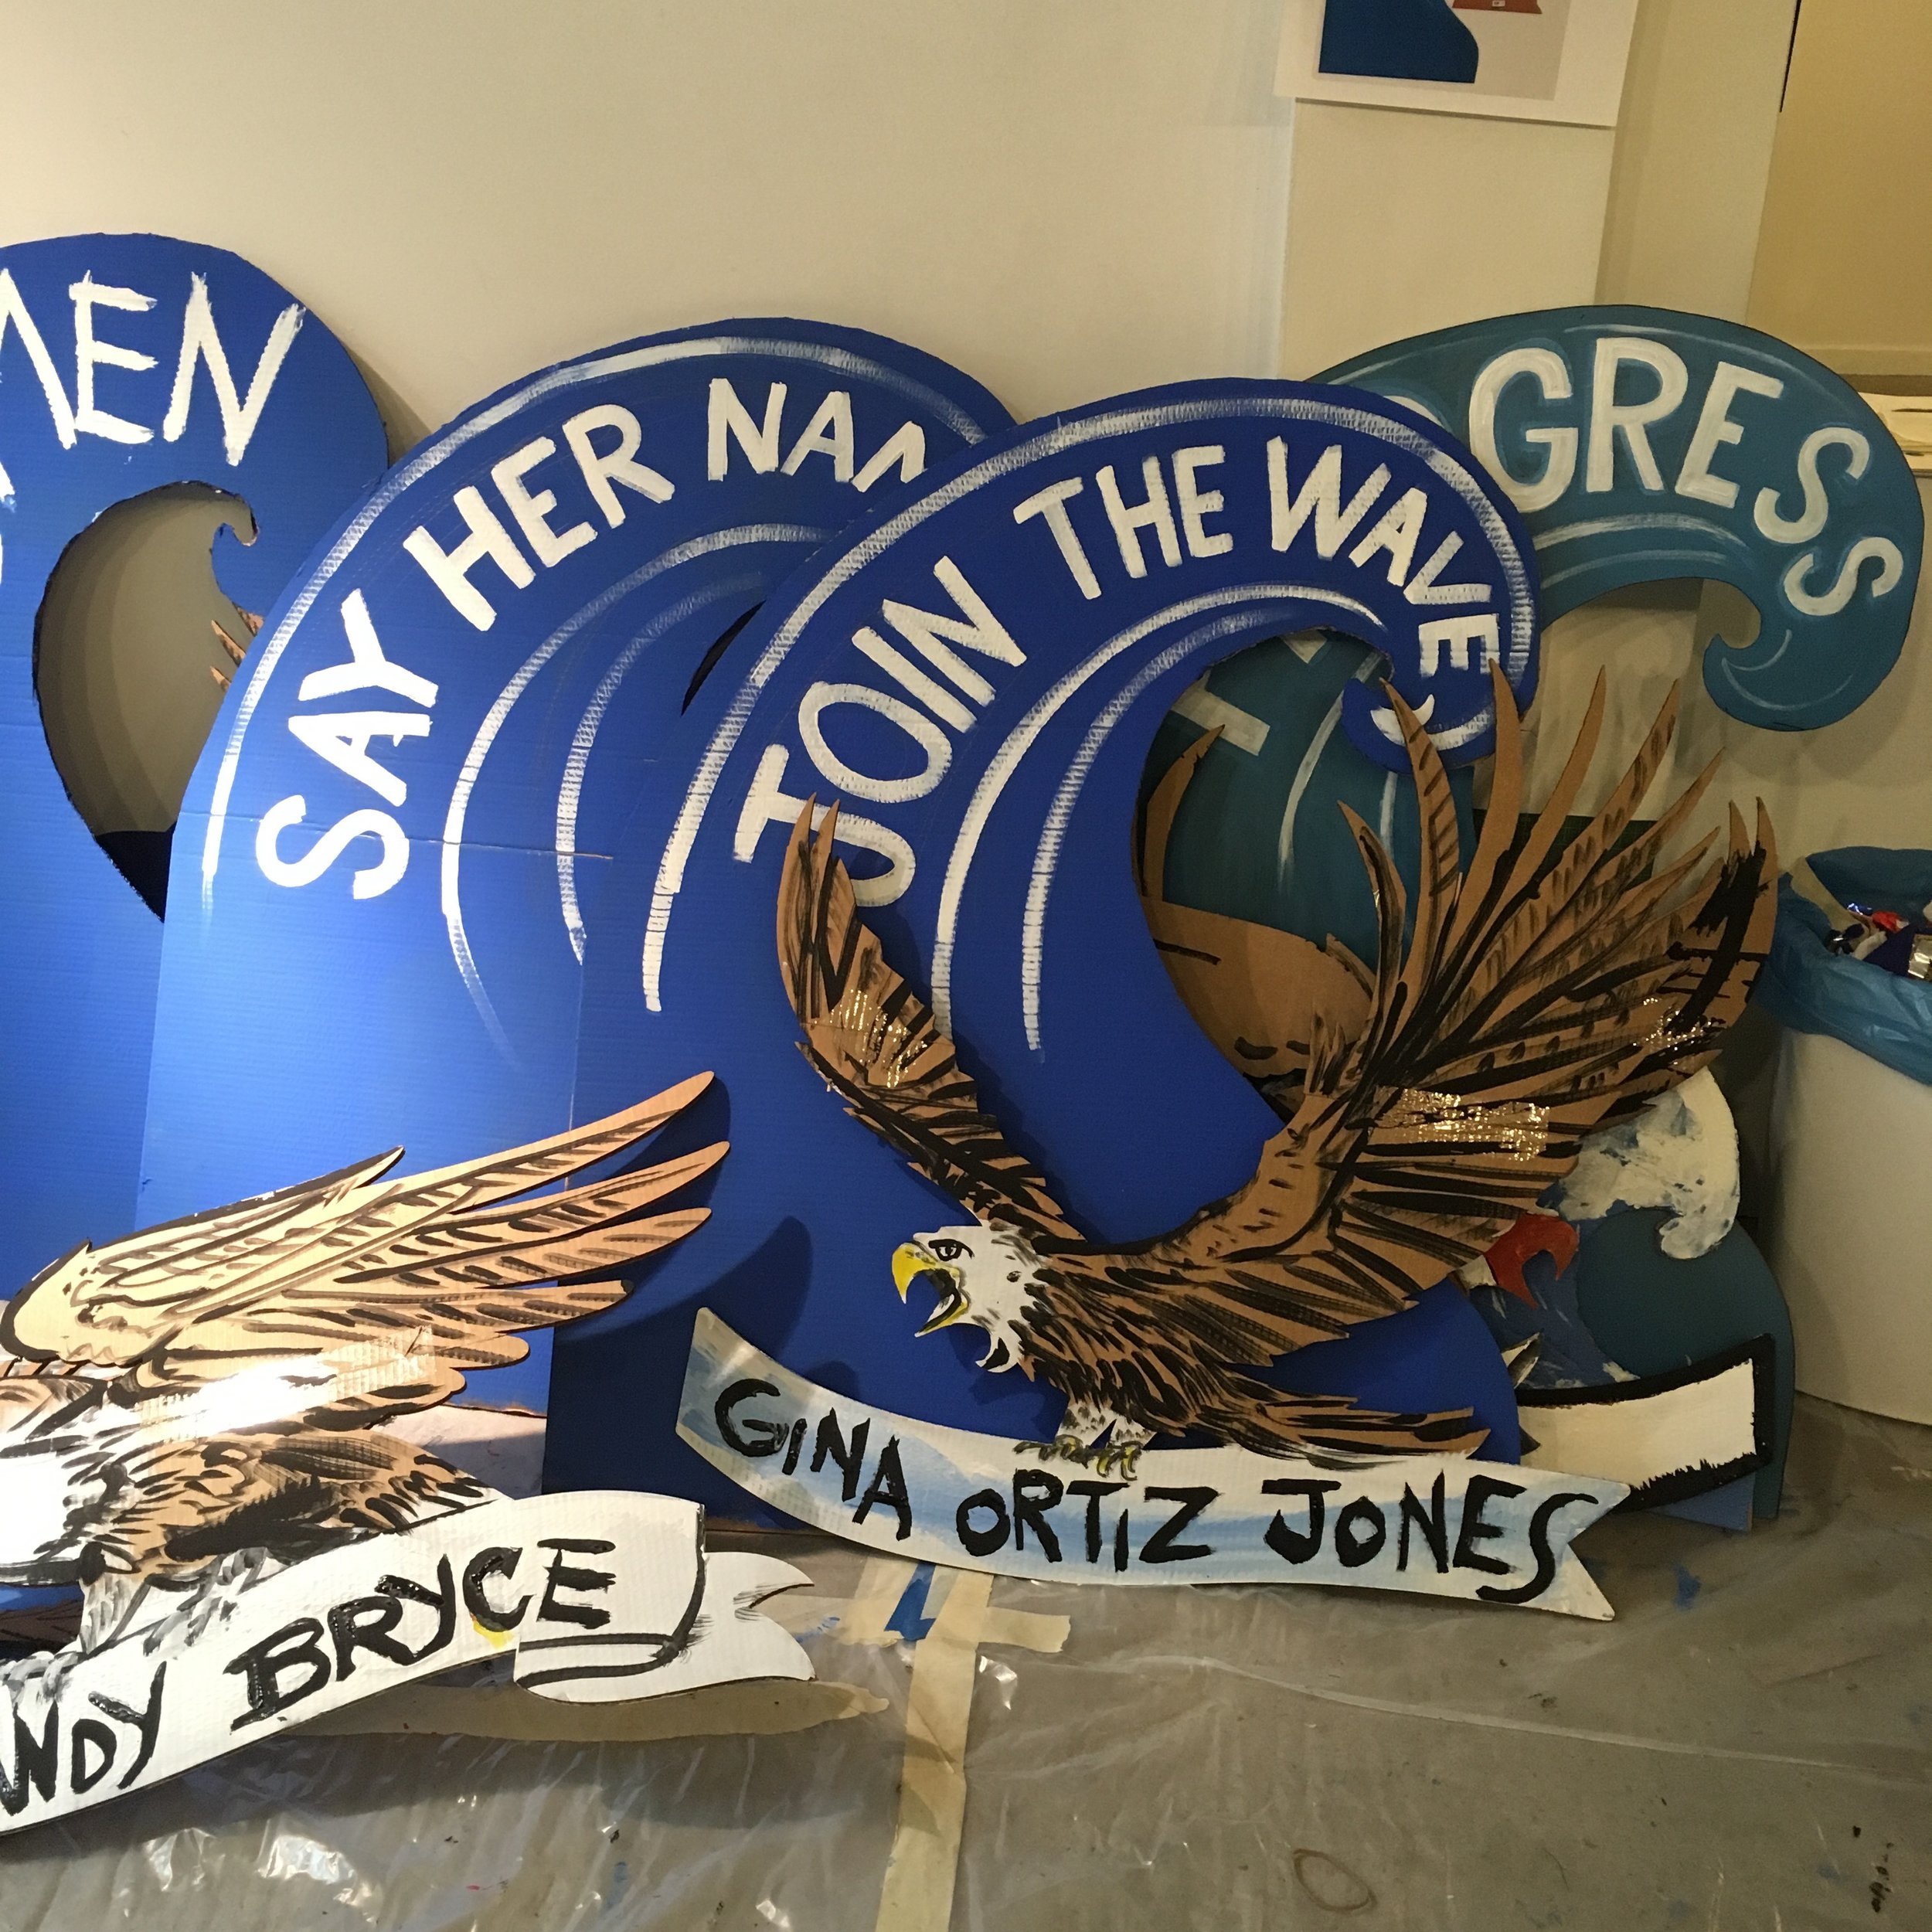 Some of the blue waves and eagles made for the NYC WOMEN'S MARCH 2018 that I made with  We Make America .